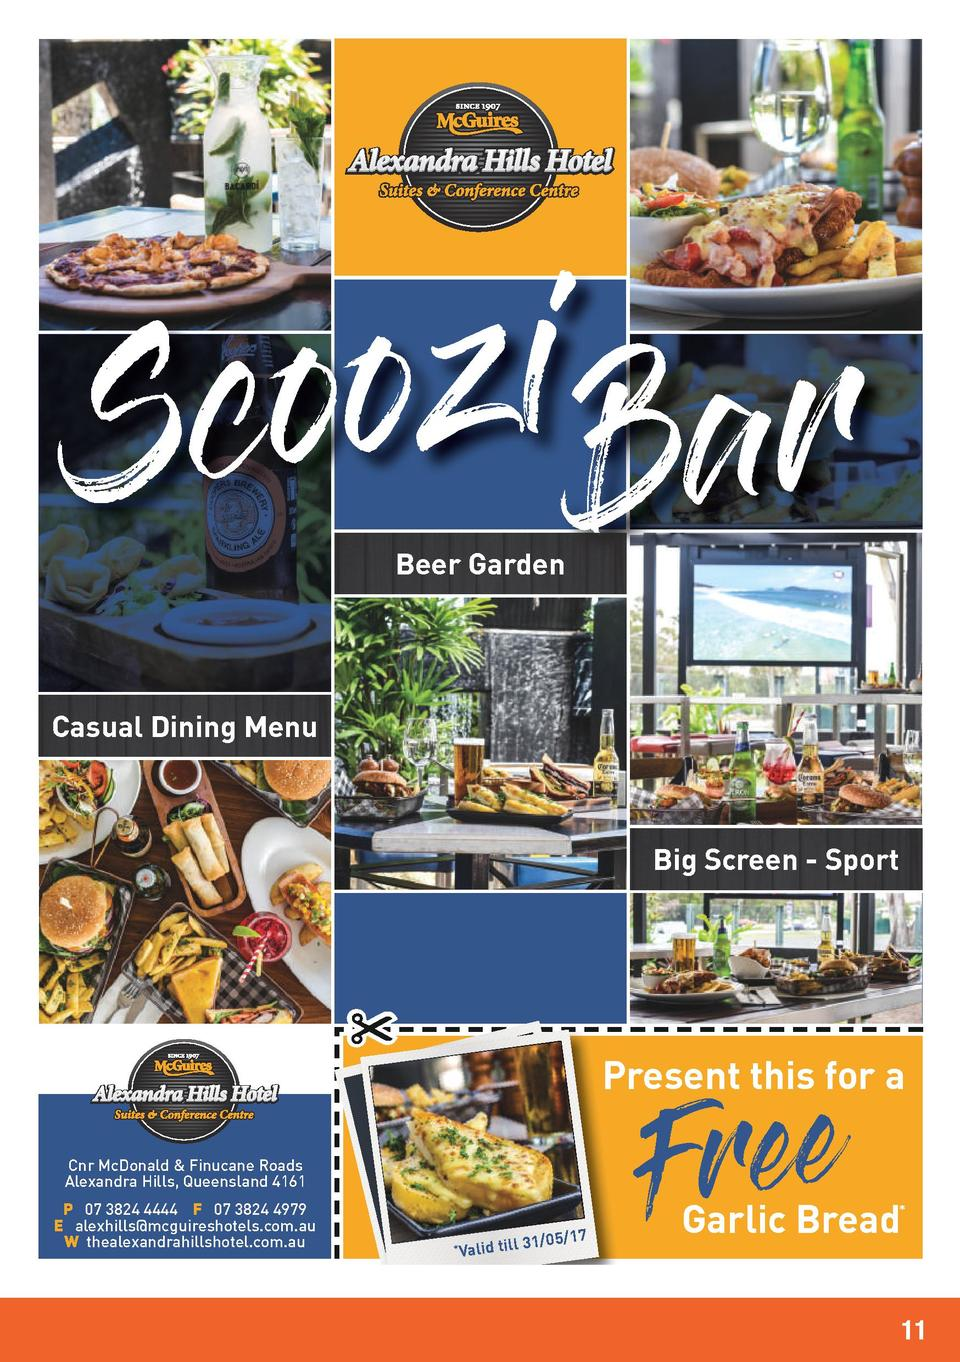 i z o o c S Bar Beer Garden  Casual Dining Menu  Big Screen - Sport  Present this for a Cnr McDonald   Finucane Roads Alex...